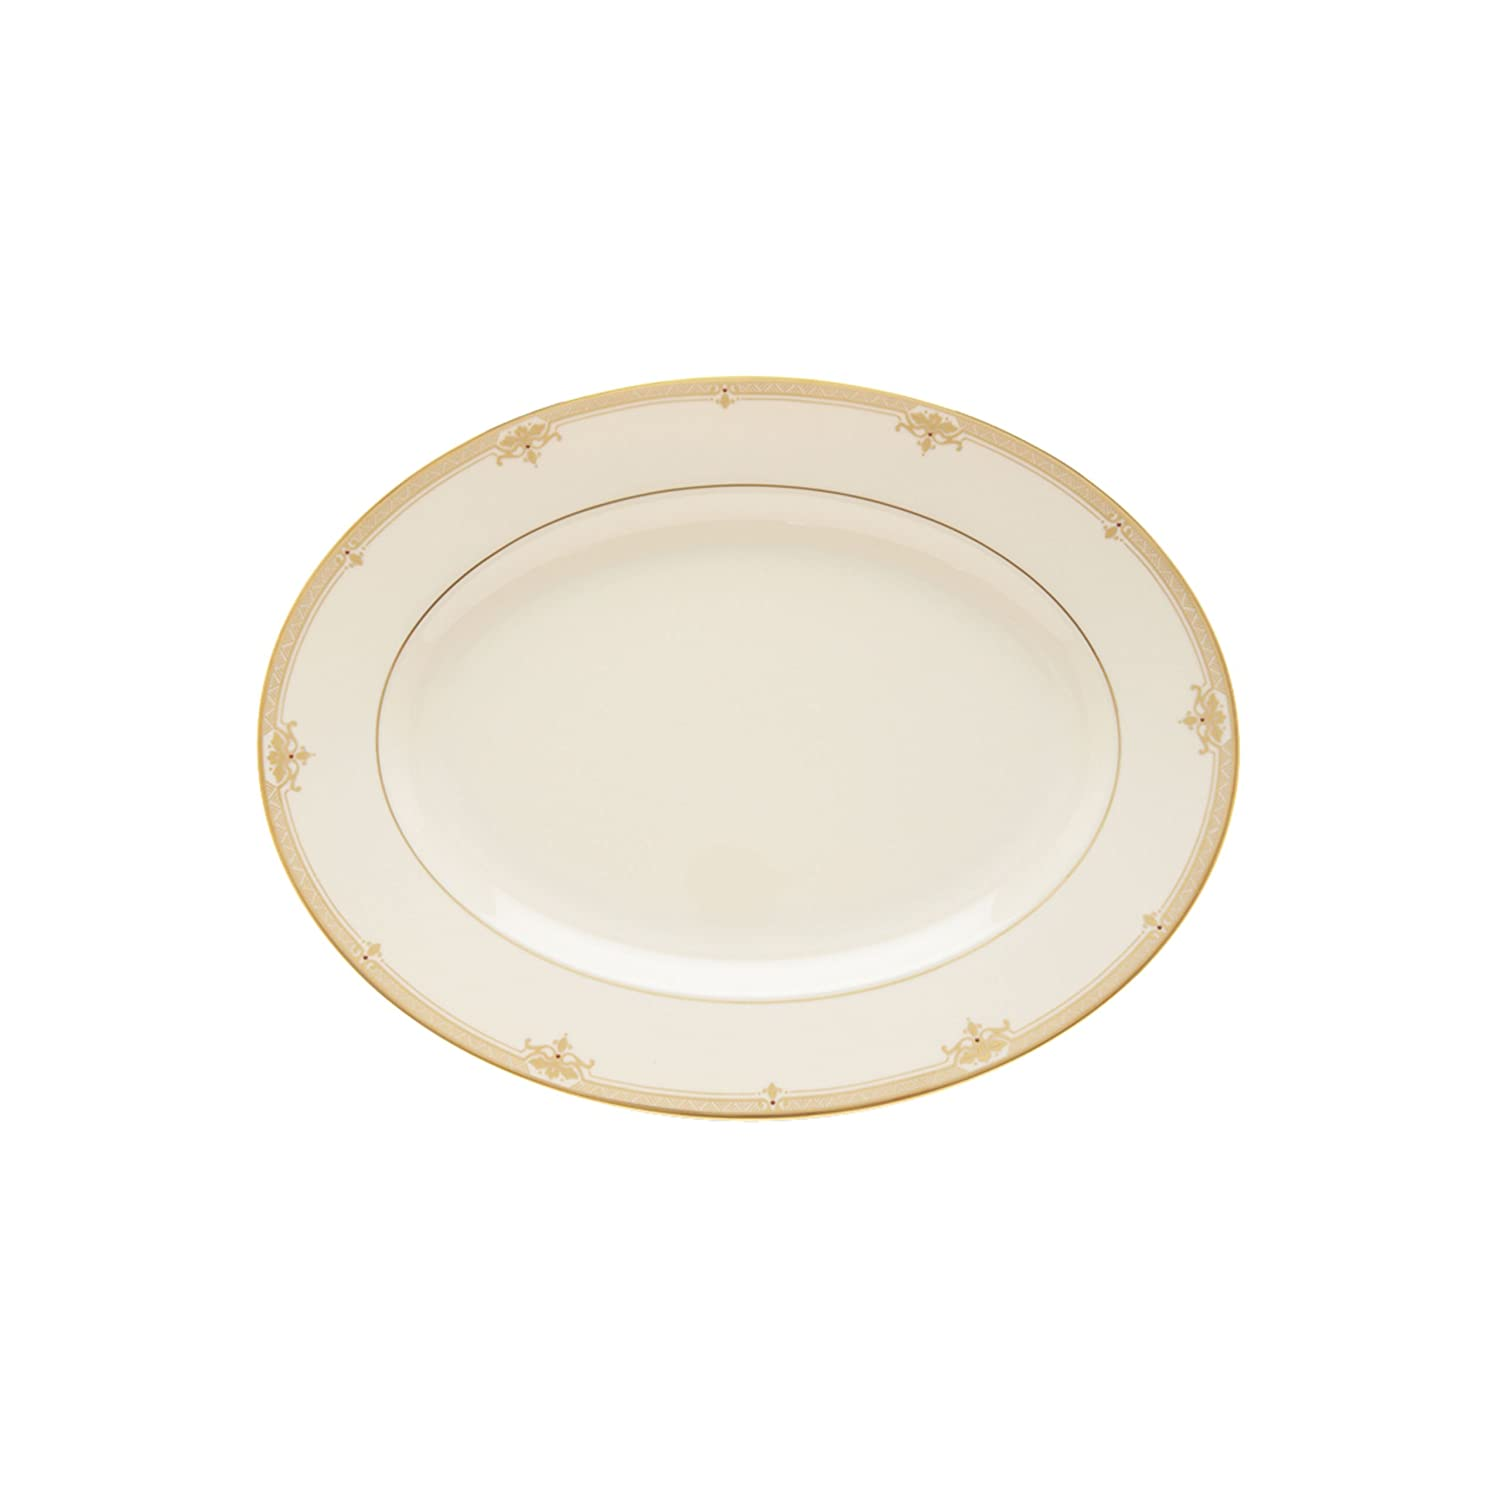 Amazon.com Lenox Republic Gold-Banded 5-Piece Place Setting Service for 1 Teacups Kitchen \u0026 Dining  sc 1 st  Amazon.com & Amazon.com: Lenox Republic Gold-Banded 5-Piece Place Setting ...